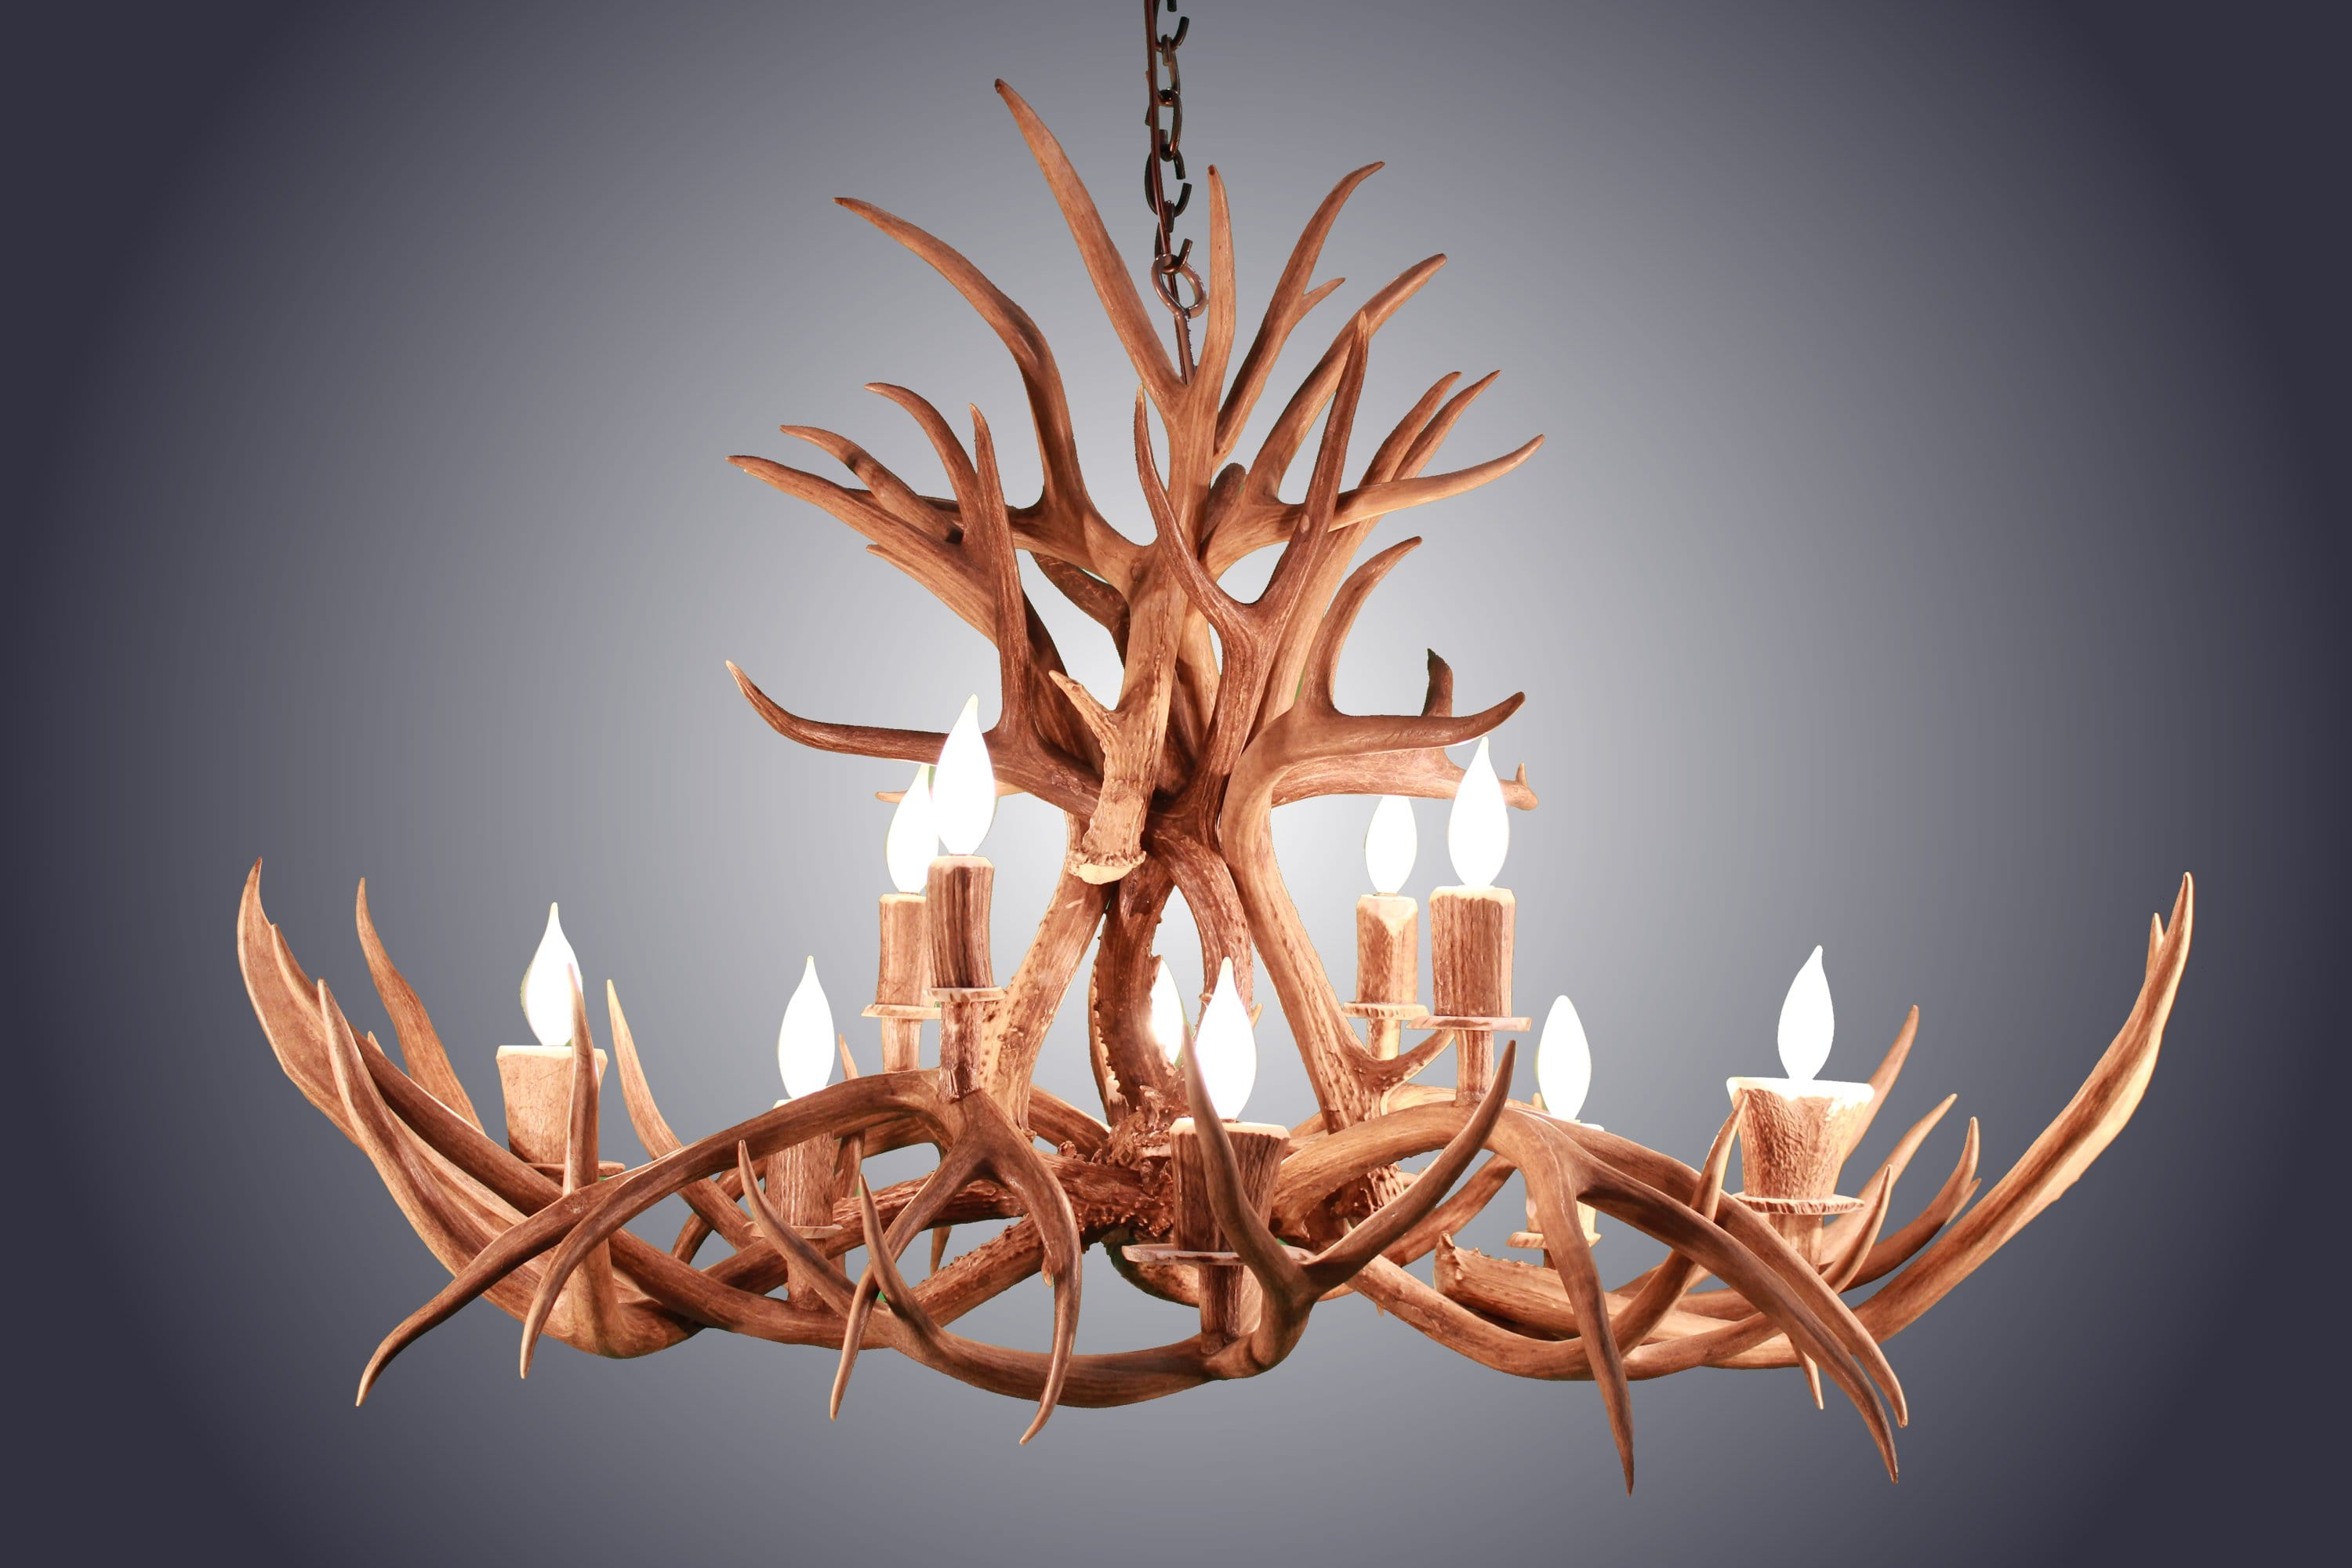 10 Light Oblong Inverted Mule Deer Antler Chandelier Sku 77 Antlerworx